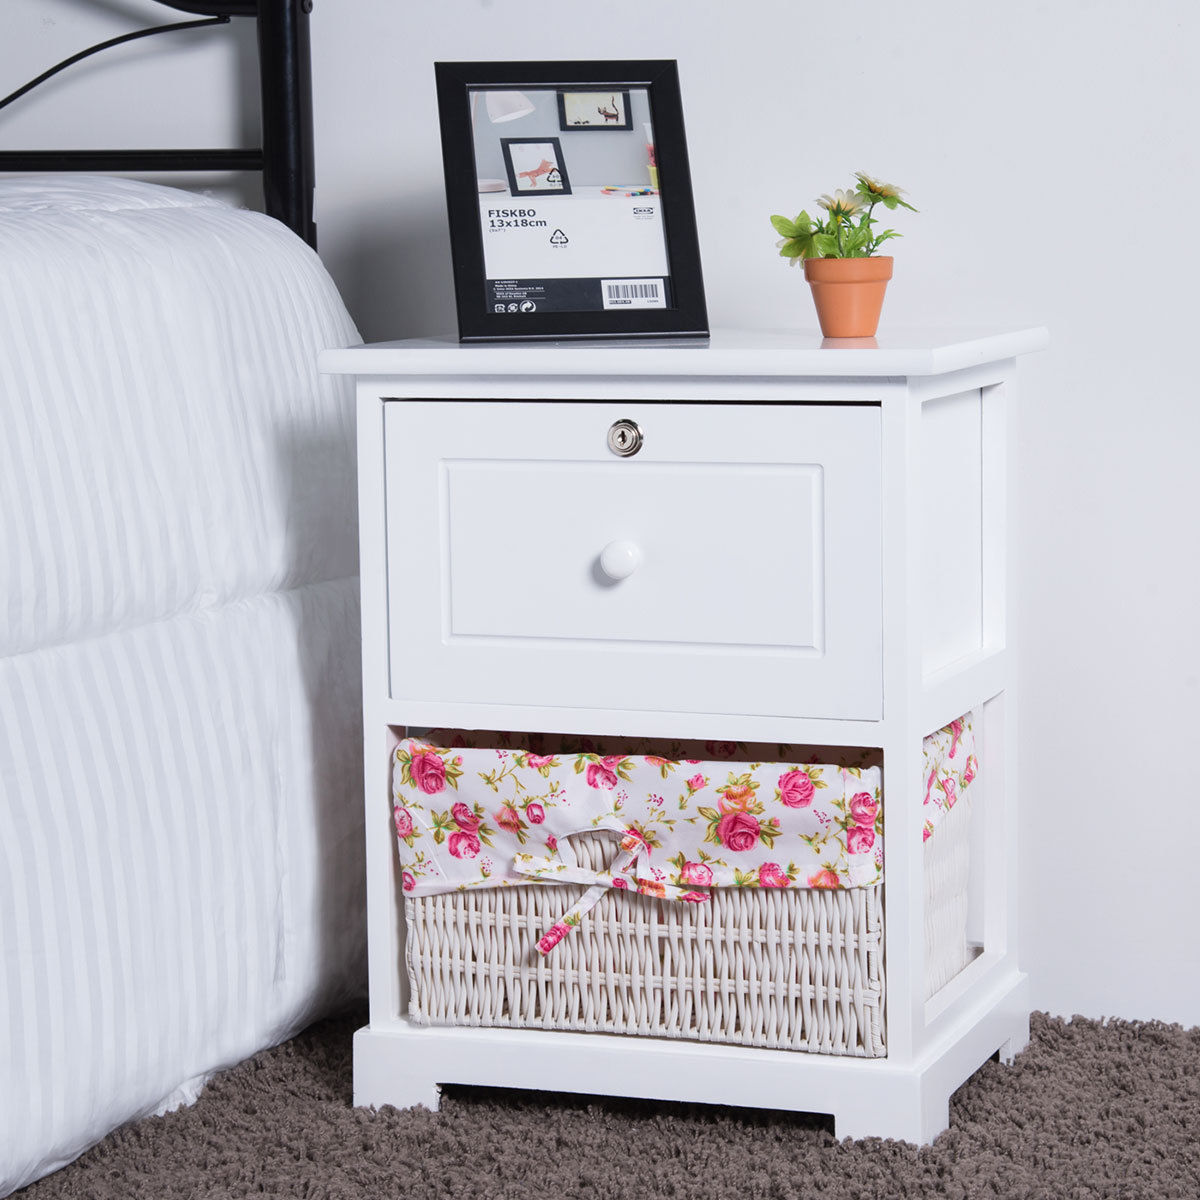 Gymax 2PCS 2 Tiers Wood Nightstand1 Drawer Bedside End Table Organizer W/Basket White - image 4 of 8